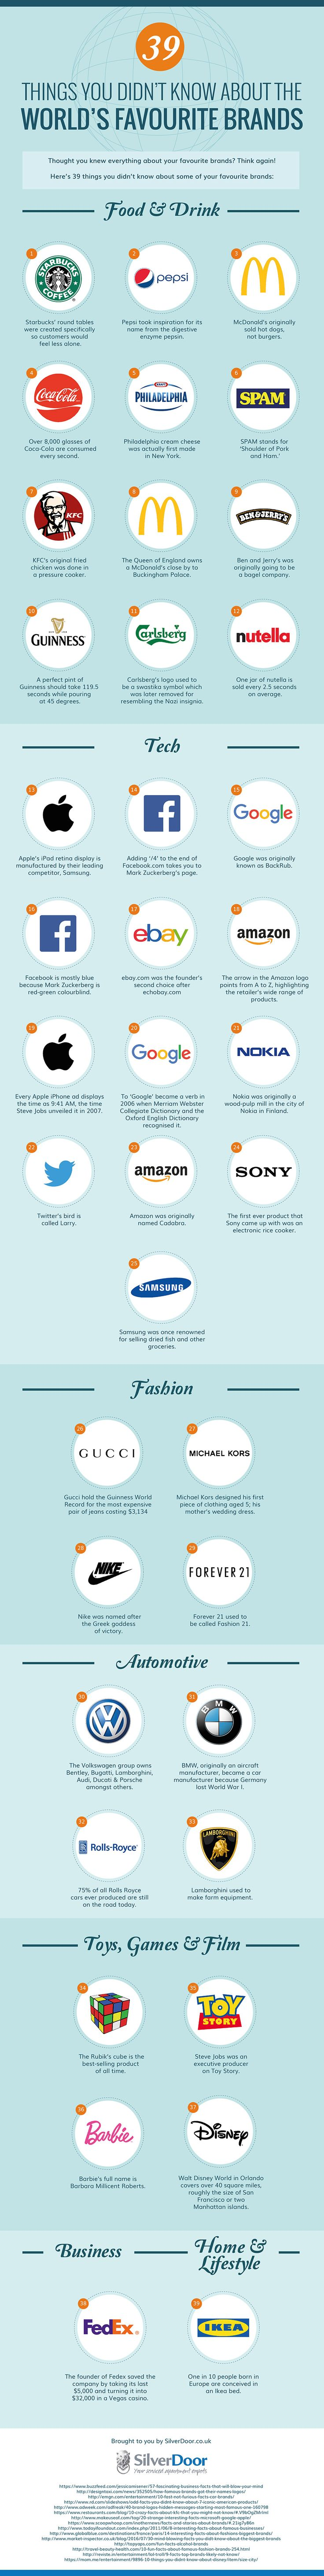 39 Things You Didn't Know About The World's Favourite Brands #Infographic #Business